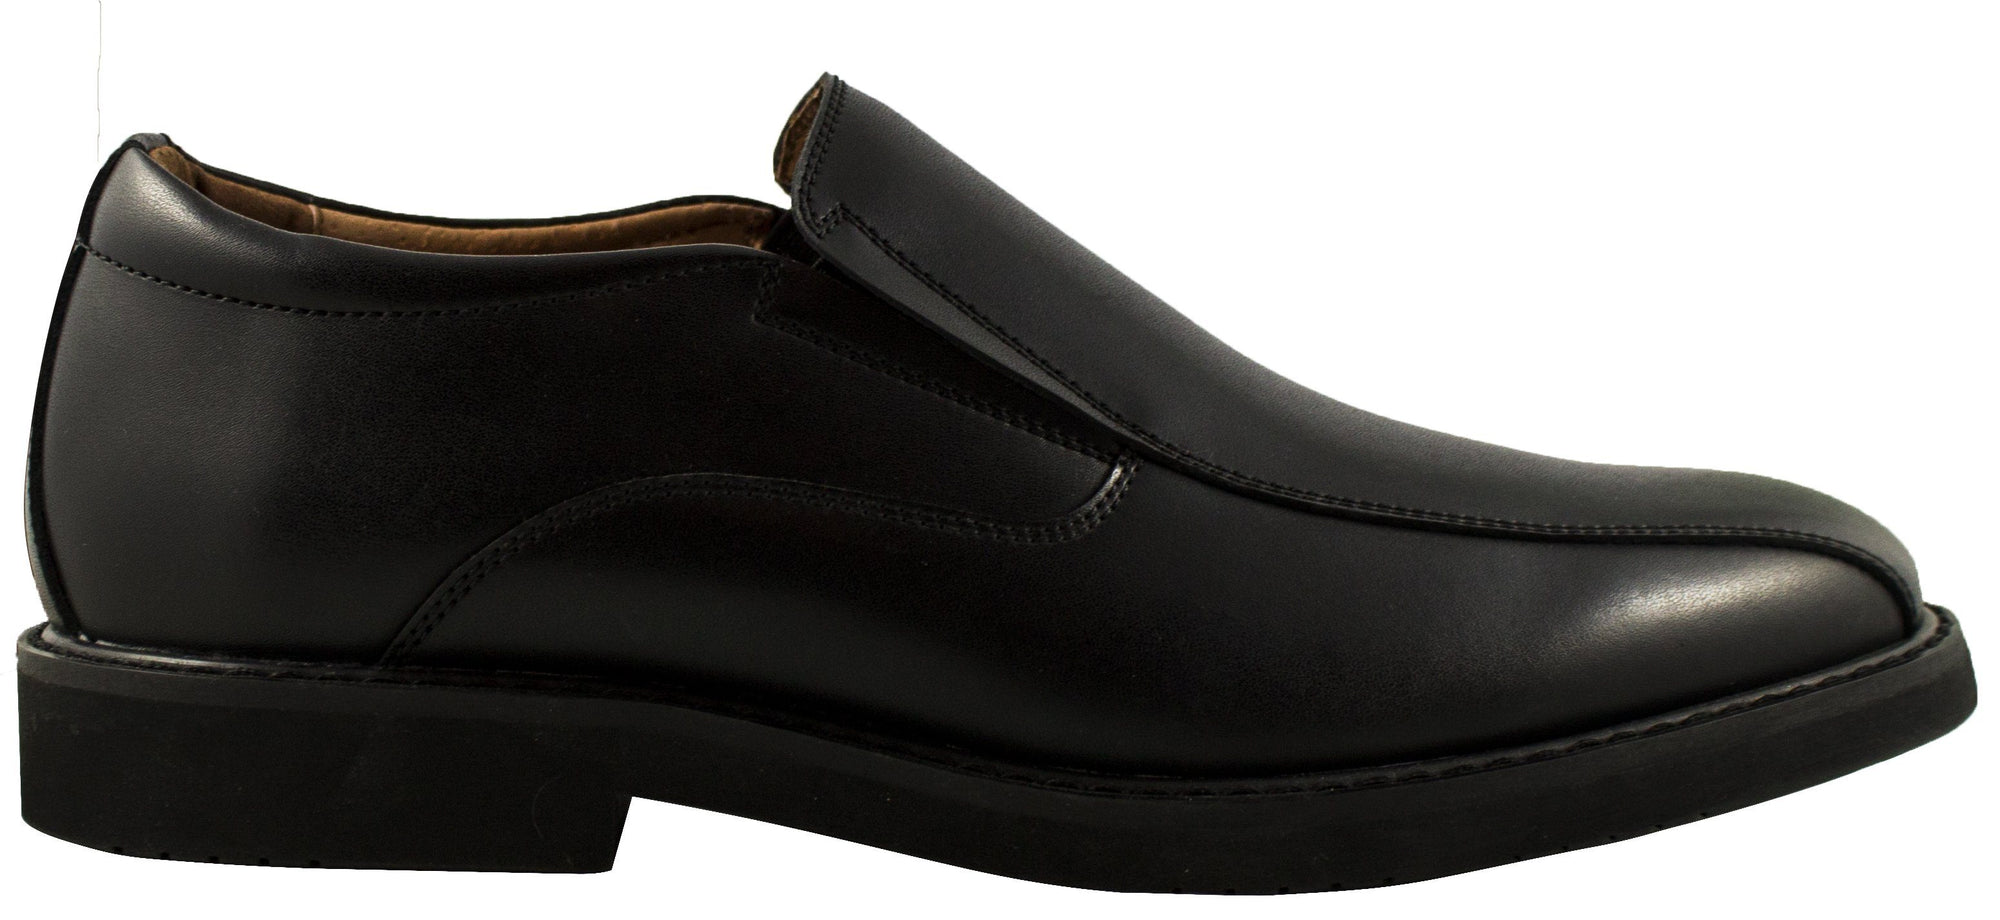 Geoffrey Beene-Brooklyn-Leather Shoe-Black Footwear Geoffrey Beene